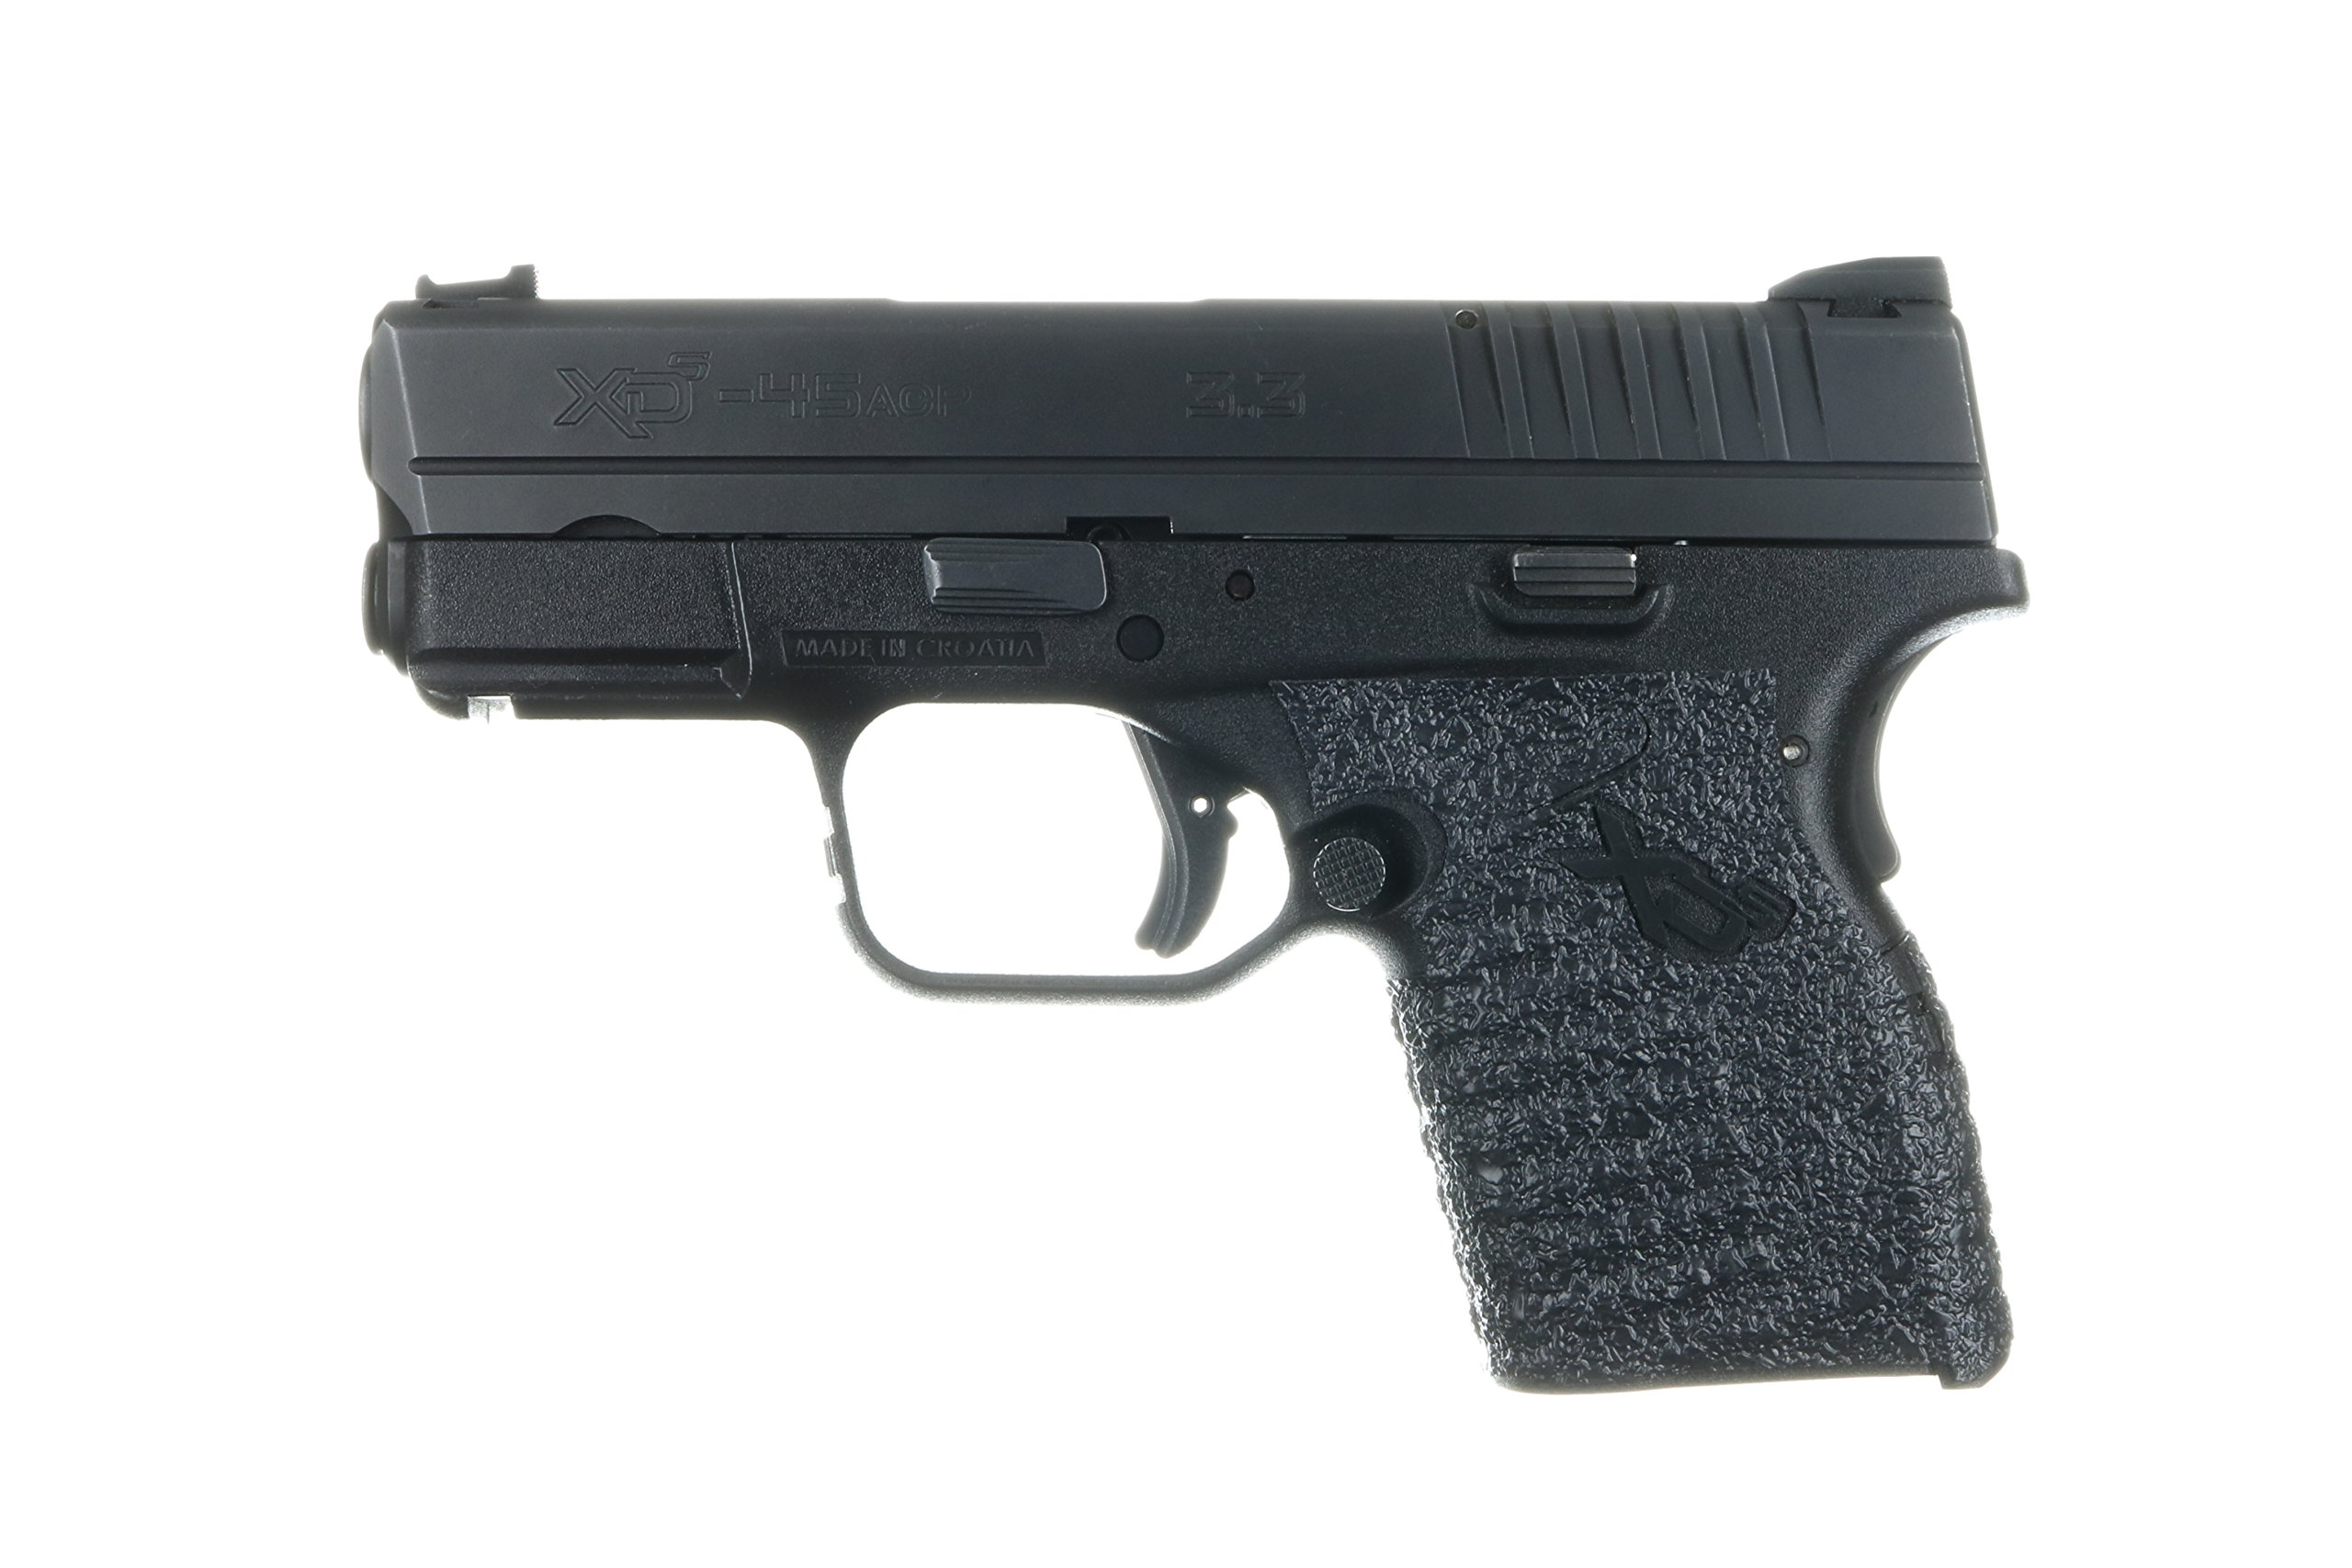 TALON Grips Talon Grip for Springfield Xds with Large Backstrap, Black Rubber Talon Grip for Springfield Xds with Large Backstrap